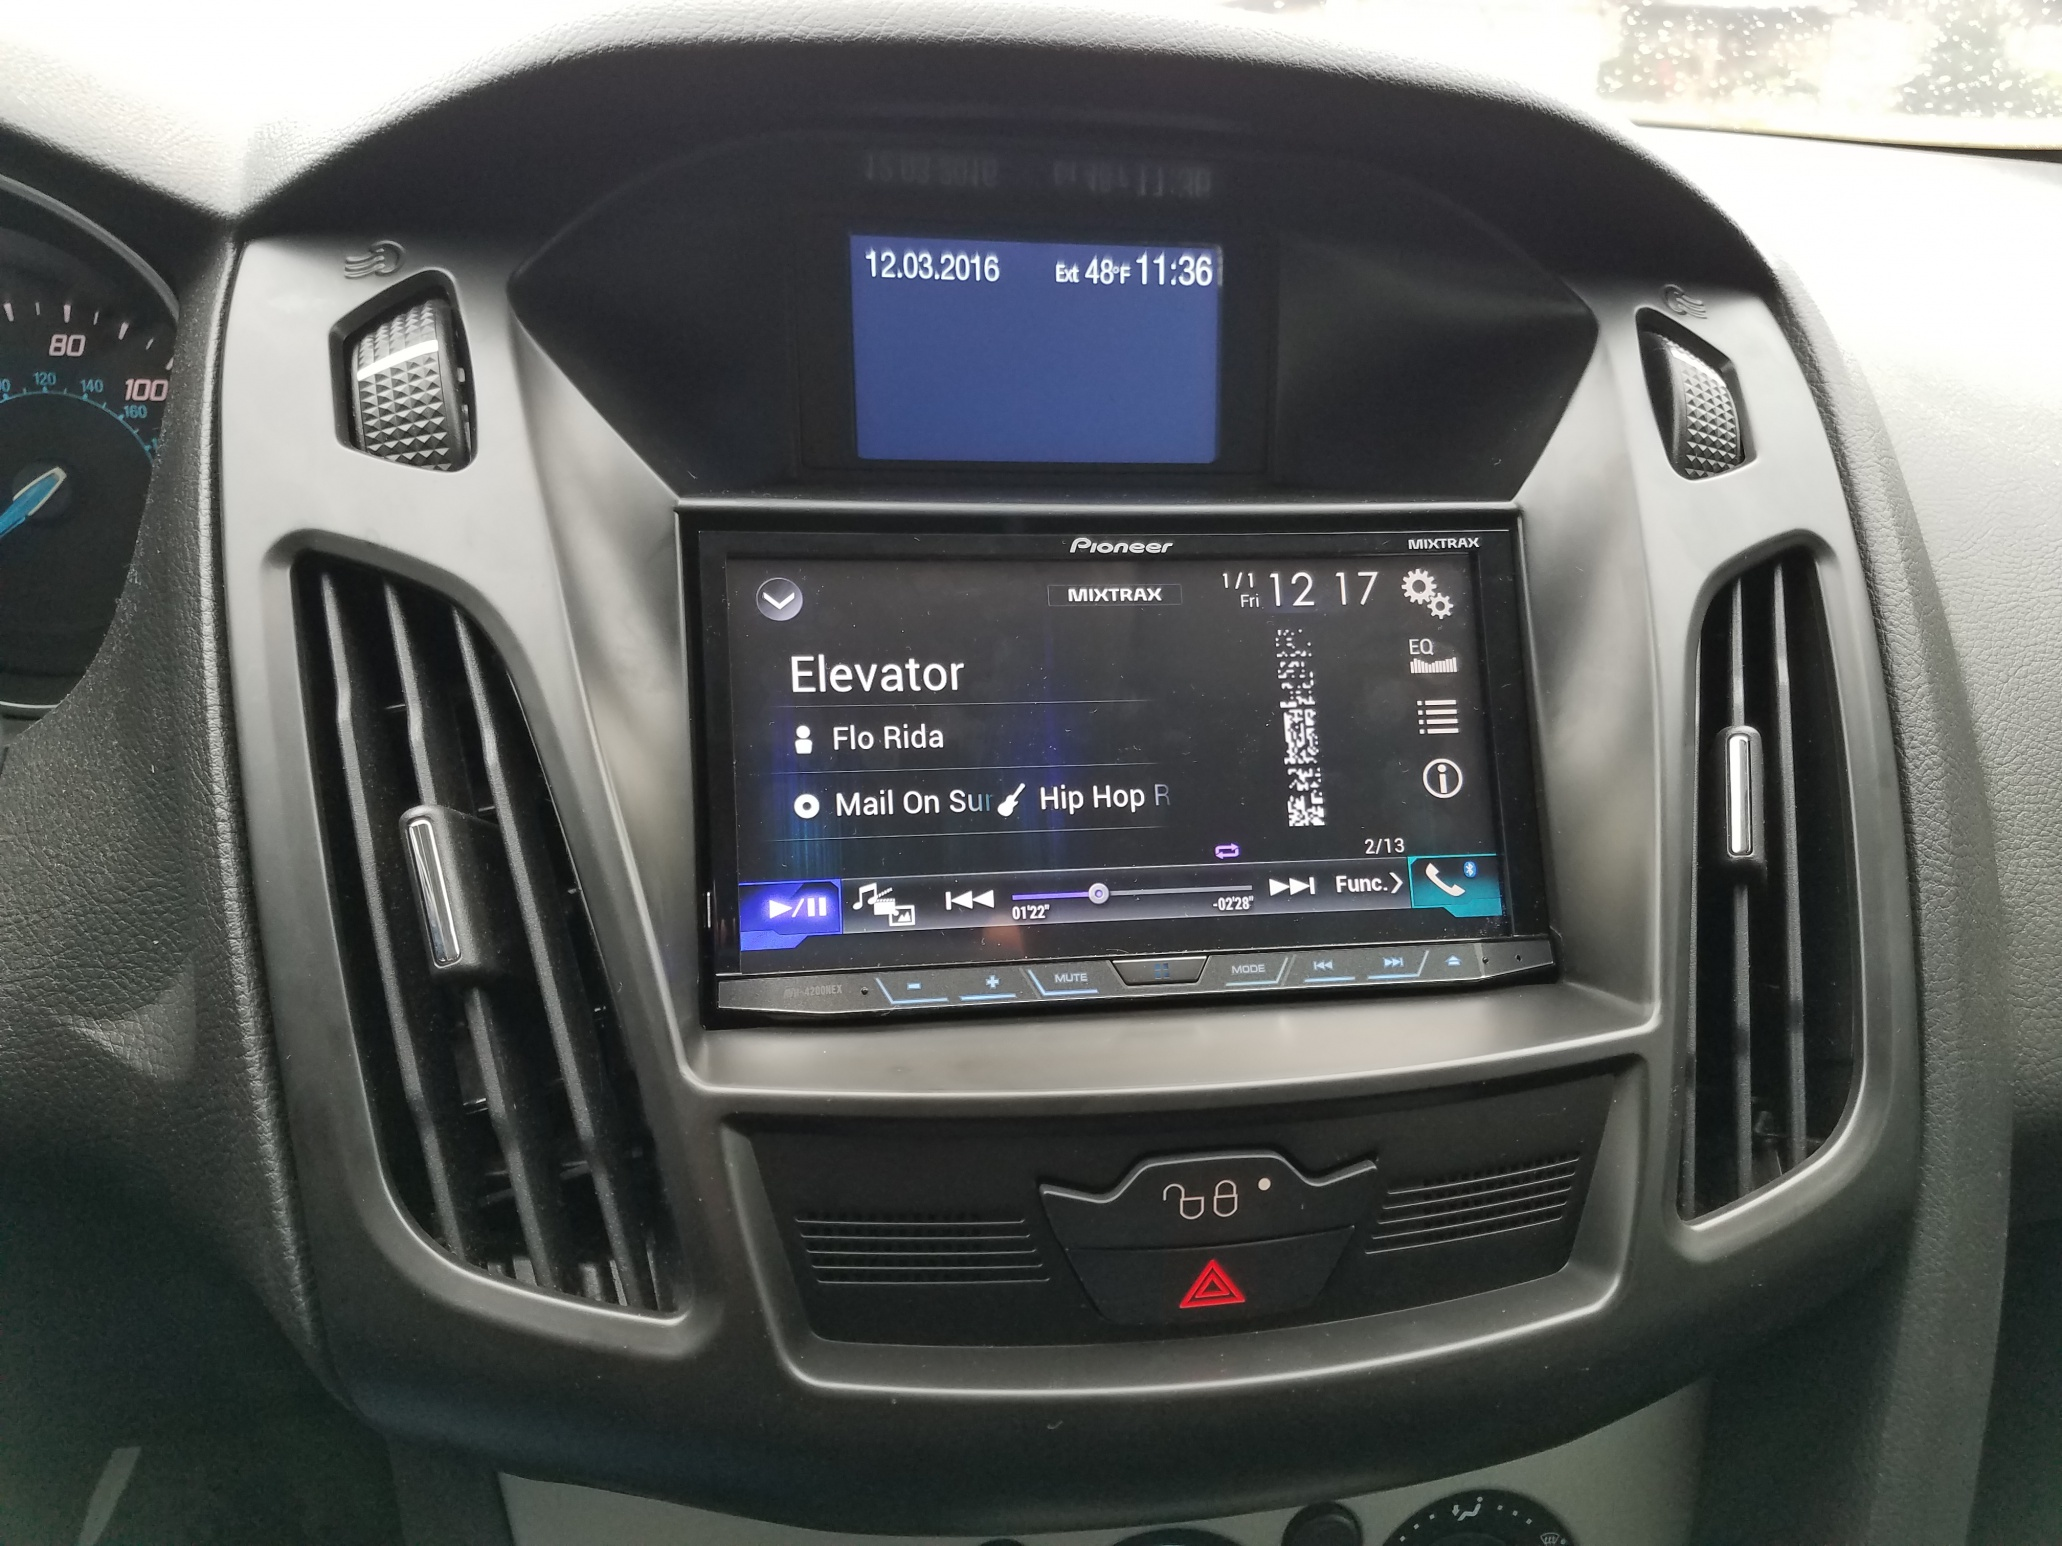 2013 Ford Focus Se Hatchback >> Stereo harness & Keeping sync 3 - Page 2 - Ford Focus ...